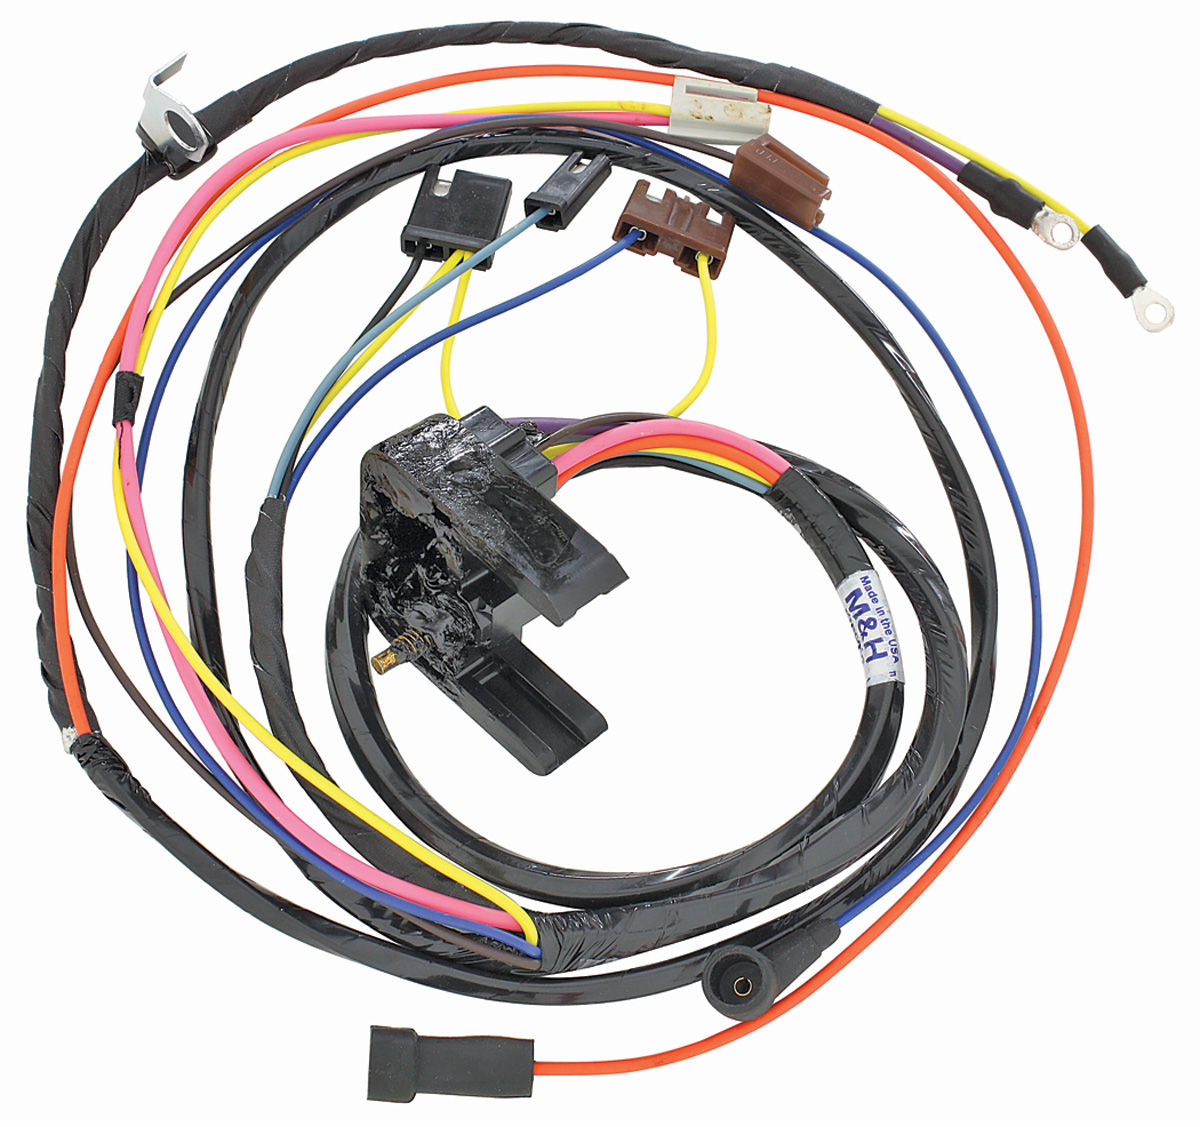 38939-lrg  Chevelle Wire Harness Clips on wire management clips, wire ring clips, wire holder clips, ford fuel line safety clips, wire clips and fasteners, wire loom install tool, wire lead clips, wire retainer clips, wire panel clips, wire piercing probe for multimeter,